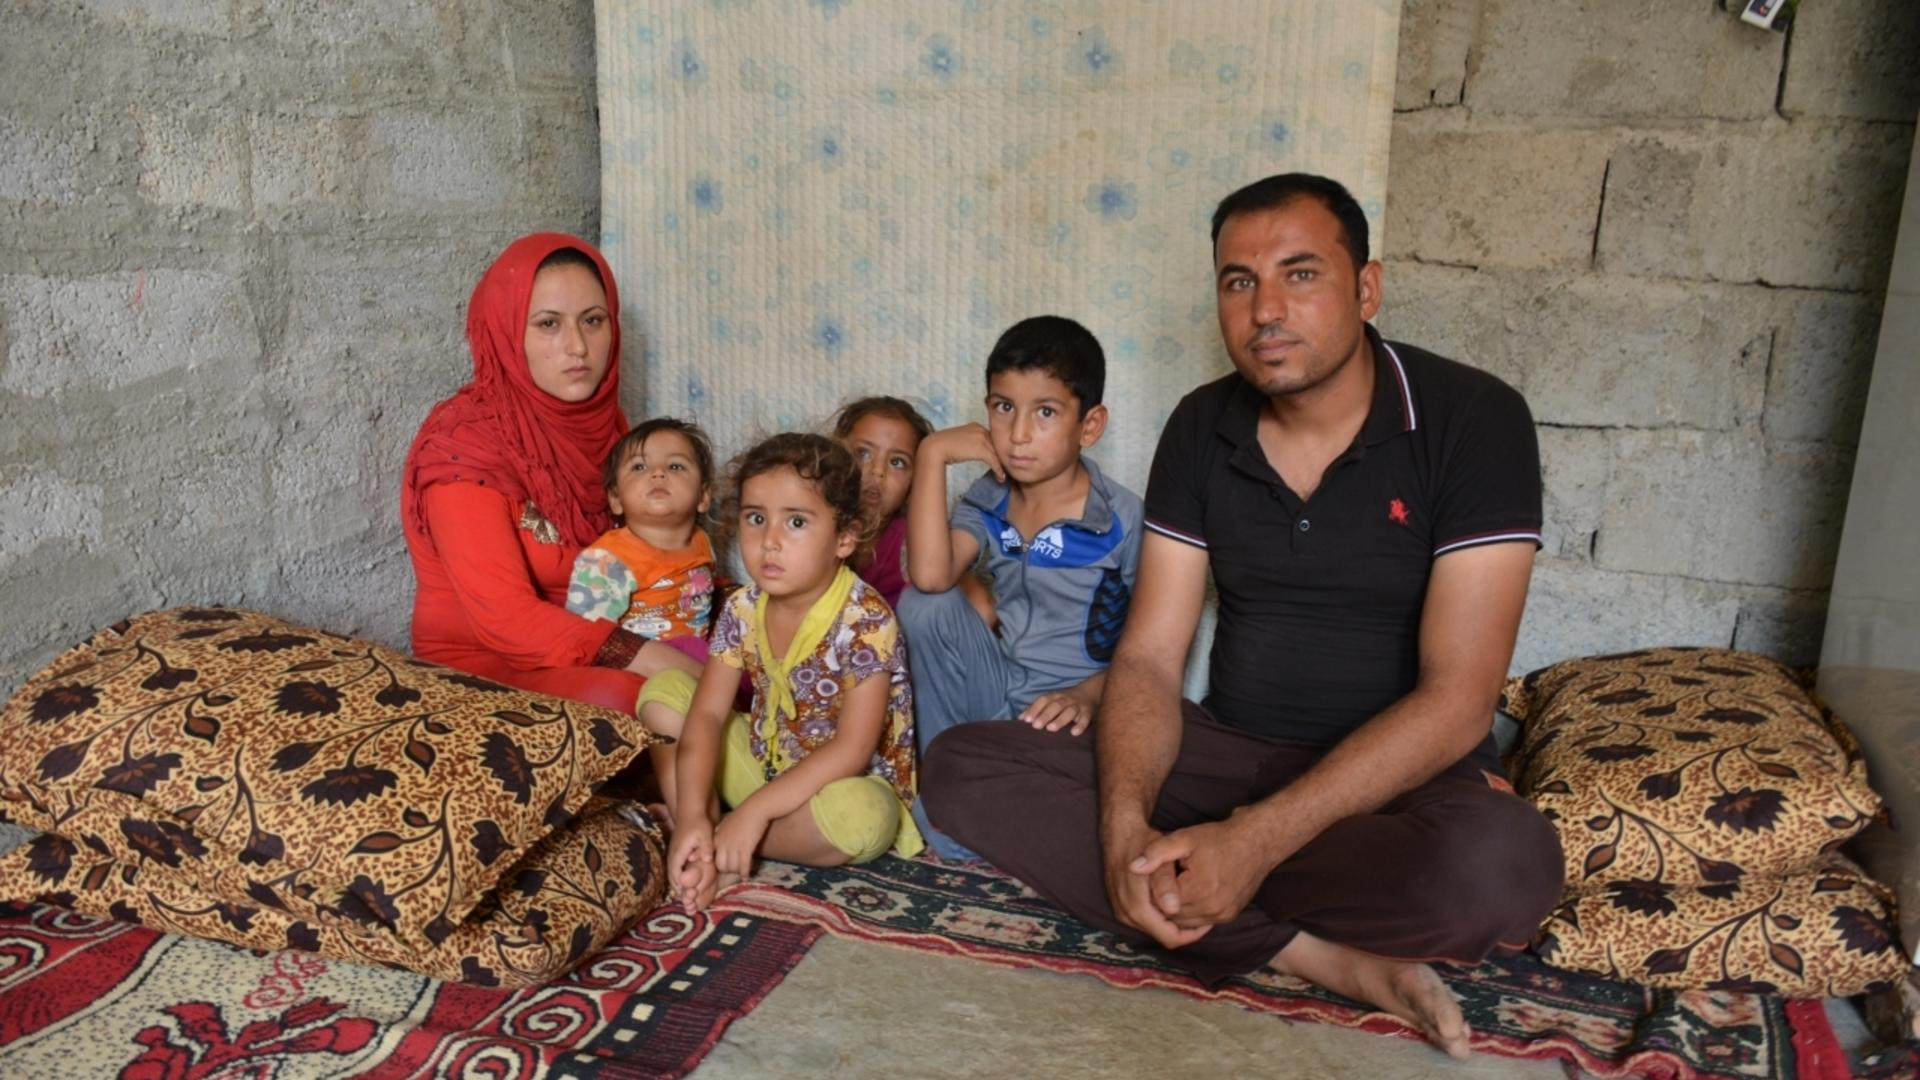 Naser and his family sit on cushions in a shelter after fleeing ISIS